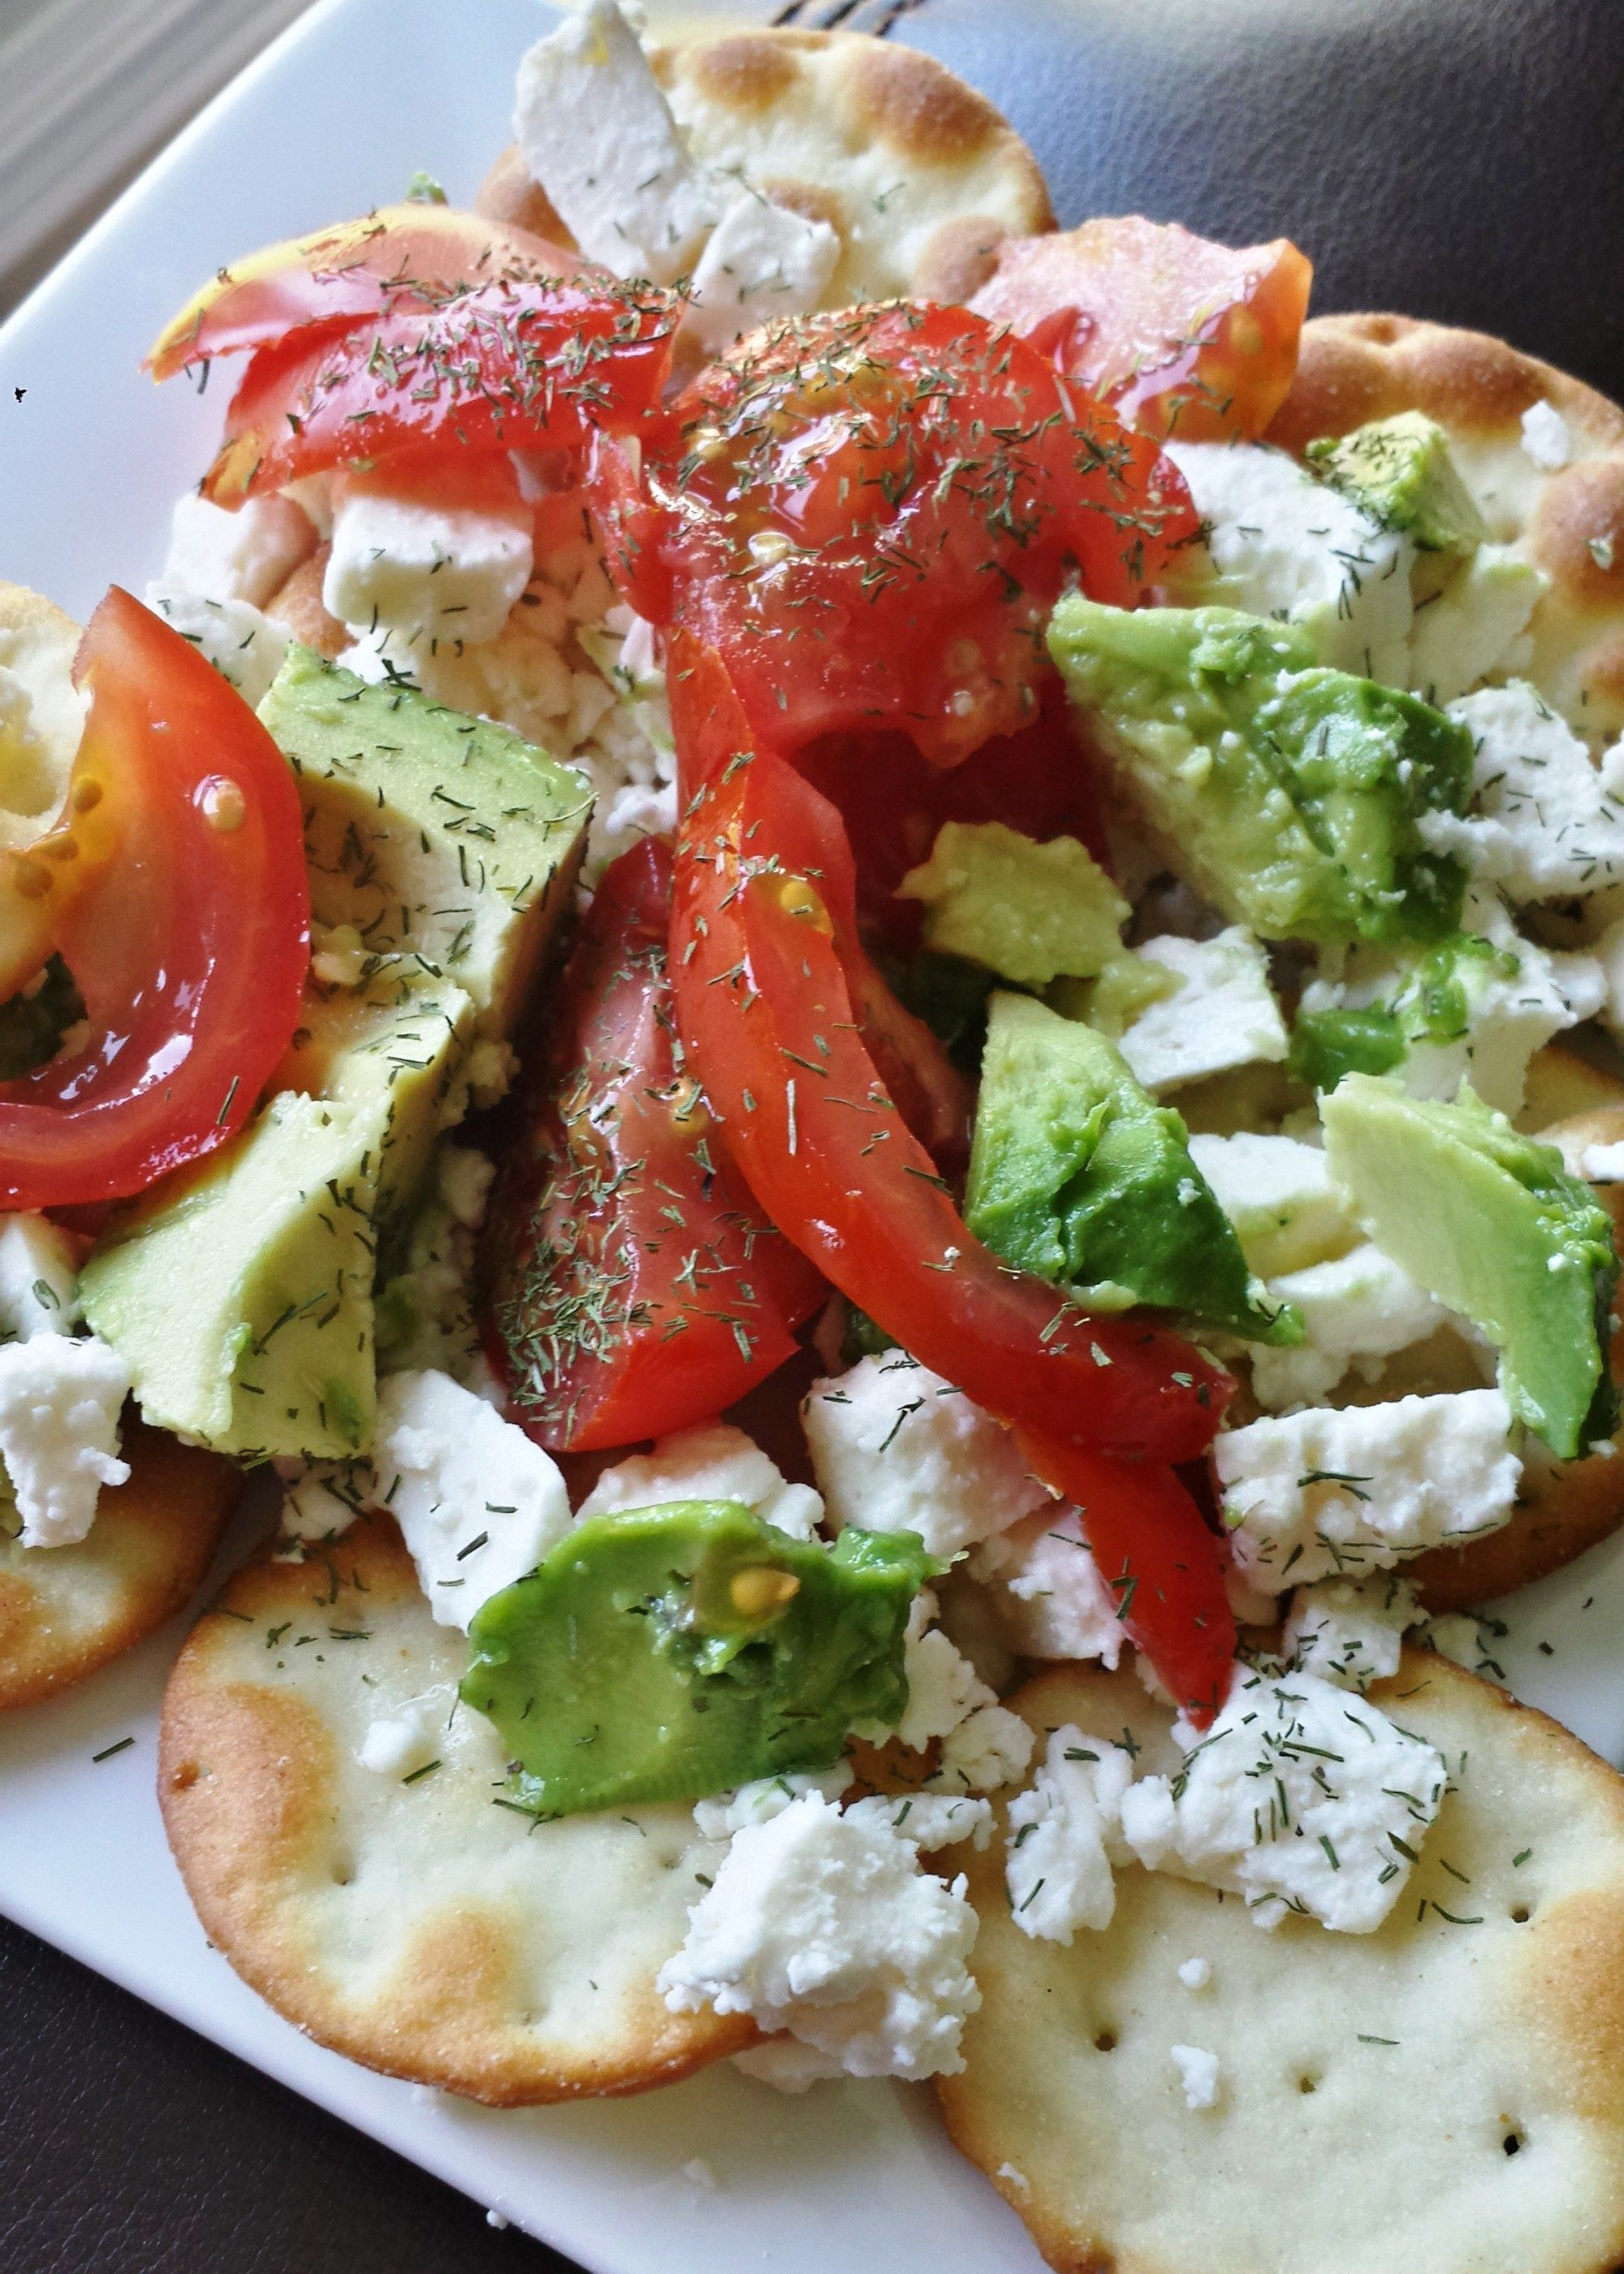 Crossover Küche Definition Feta Avocado Tomato Topped Pita Chips Recipes Food Recipes